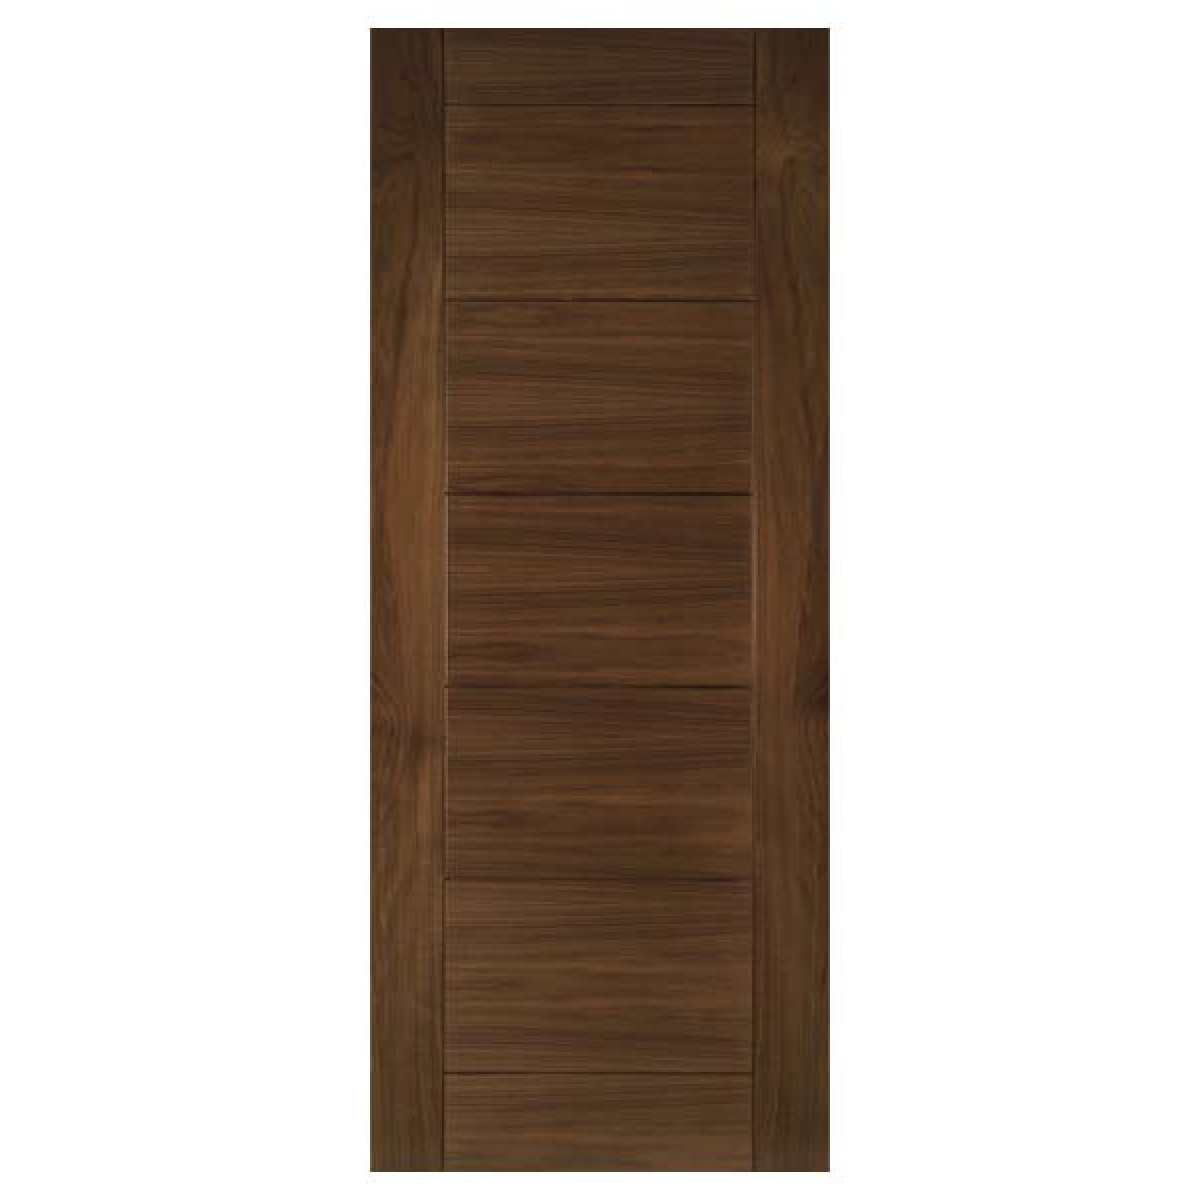 seville walnut flat websters Image by Websters Timber